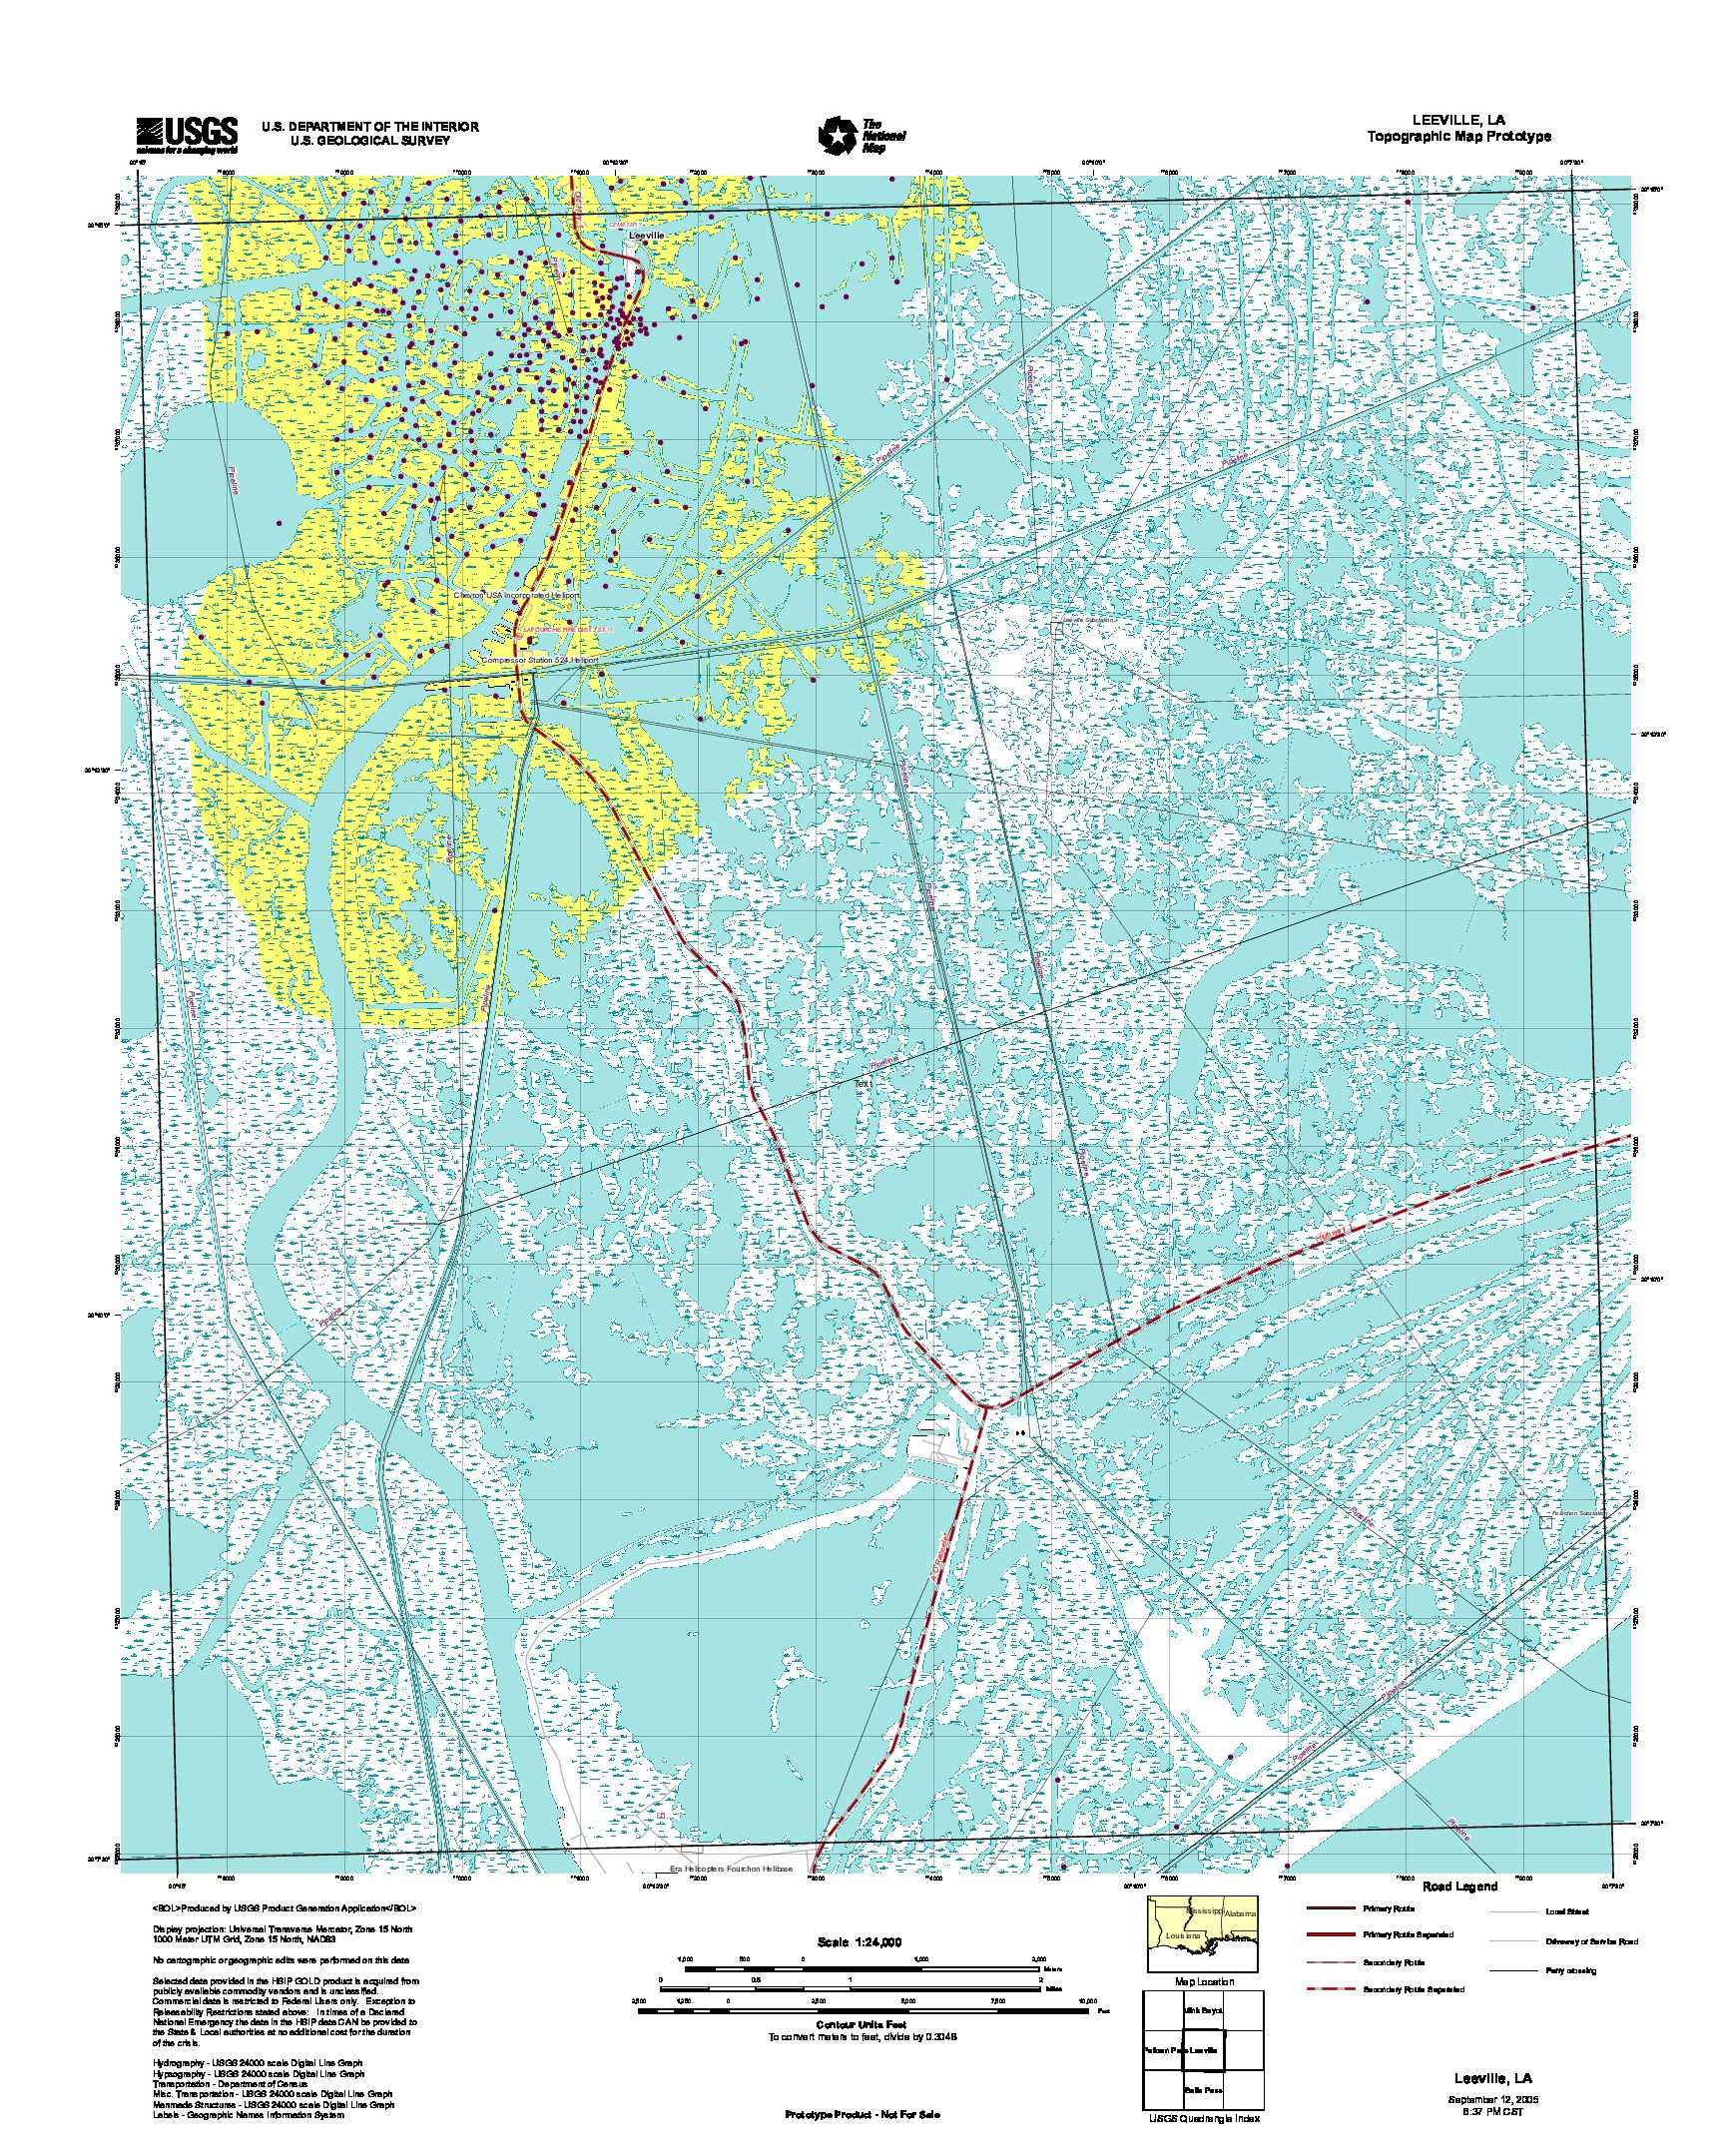 Leeville, Topographic Map Prototype, Louisiana, United States, September 12, 2005